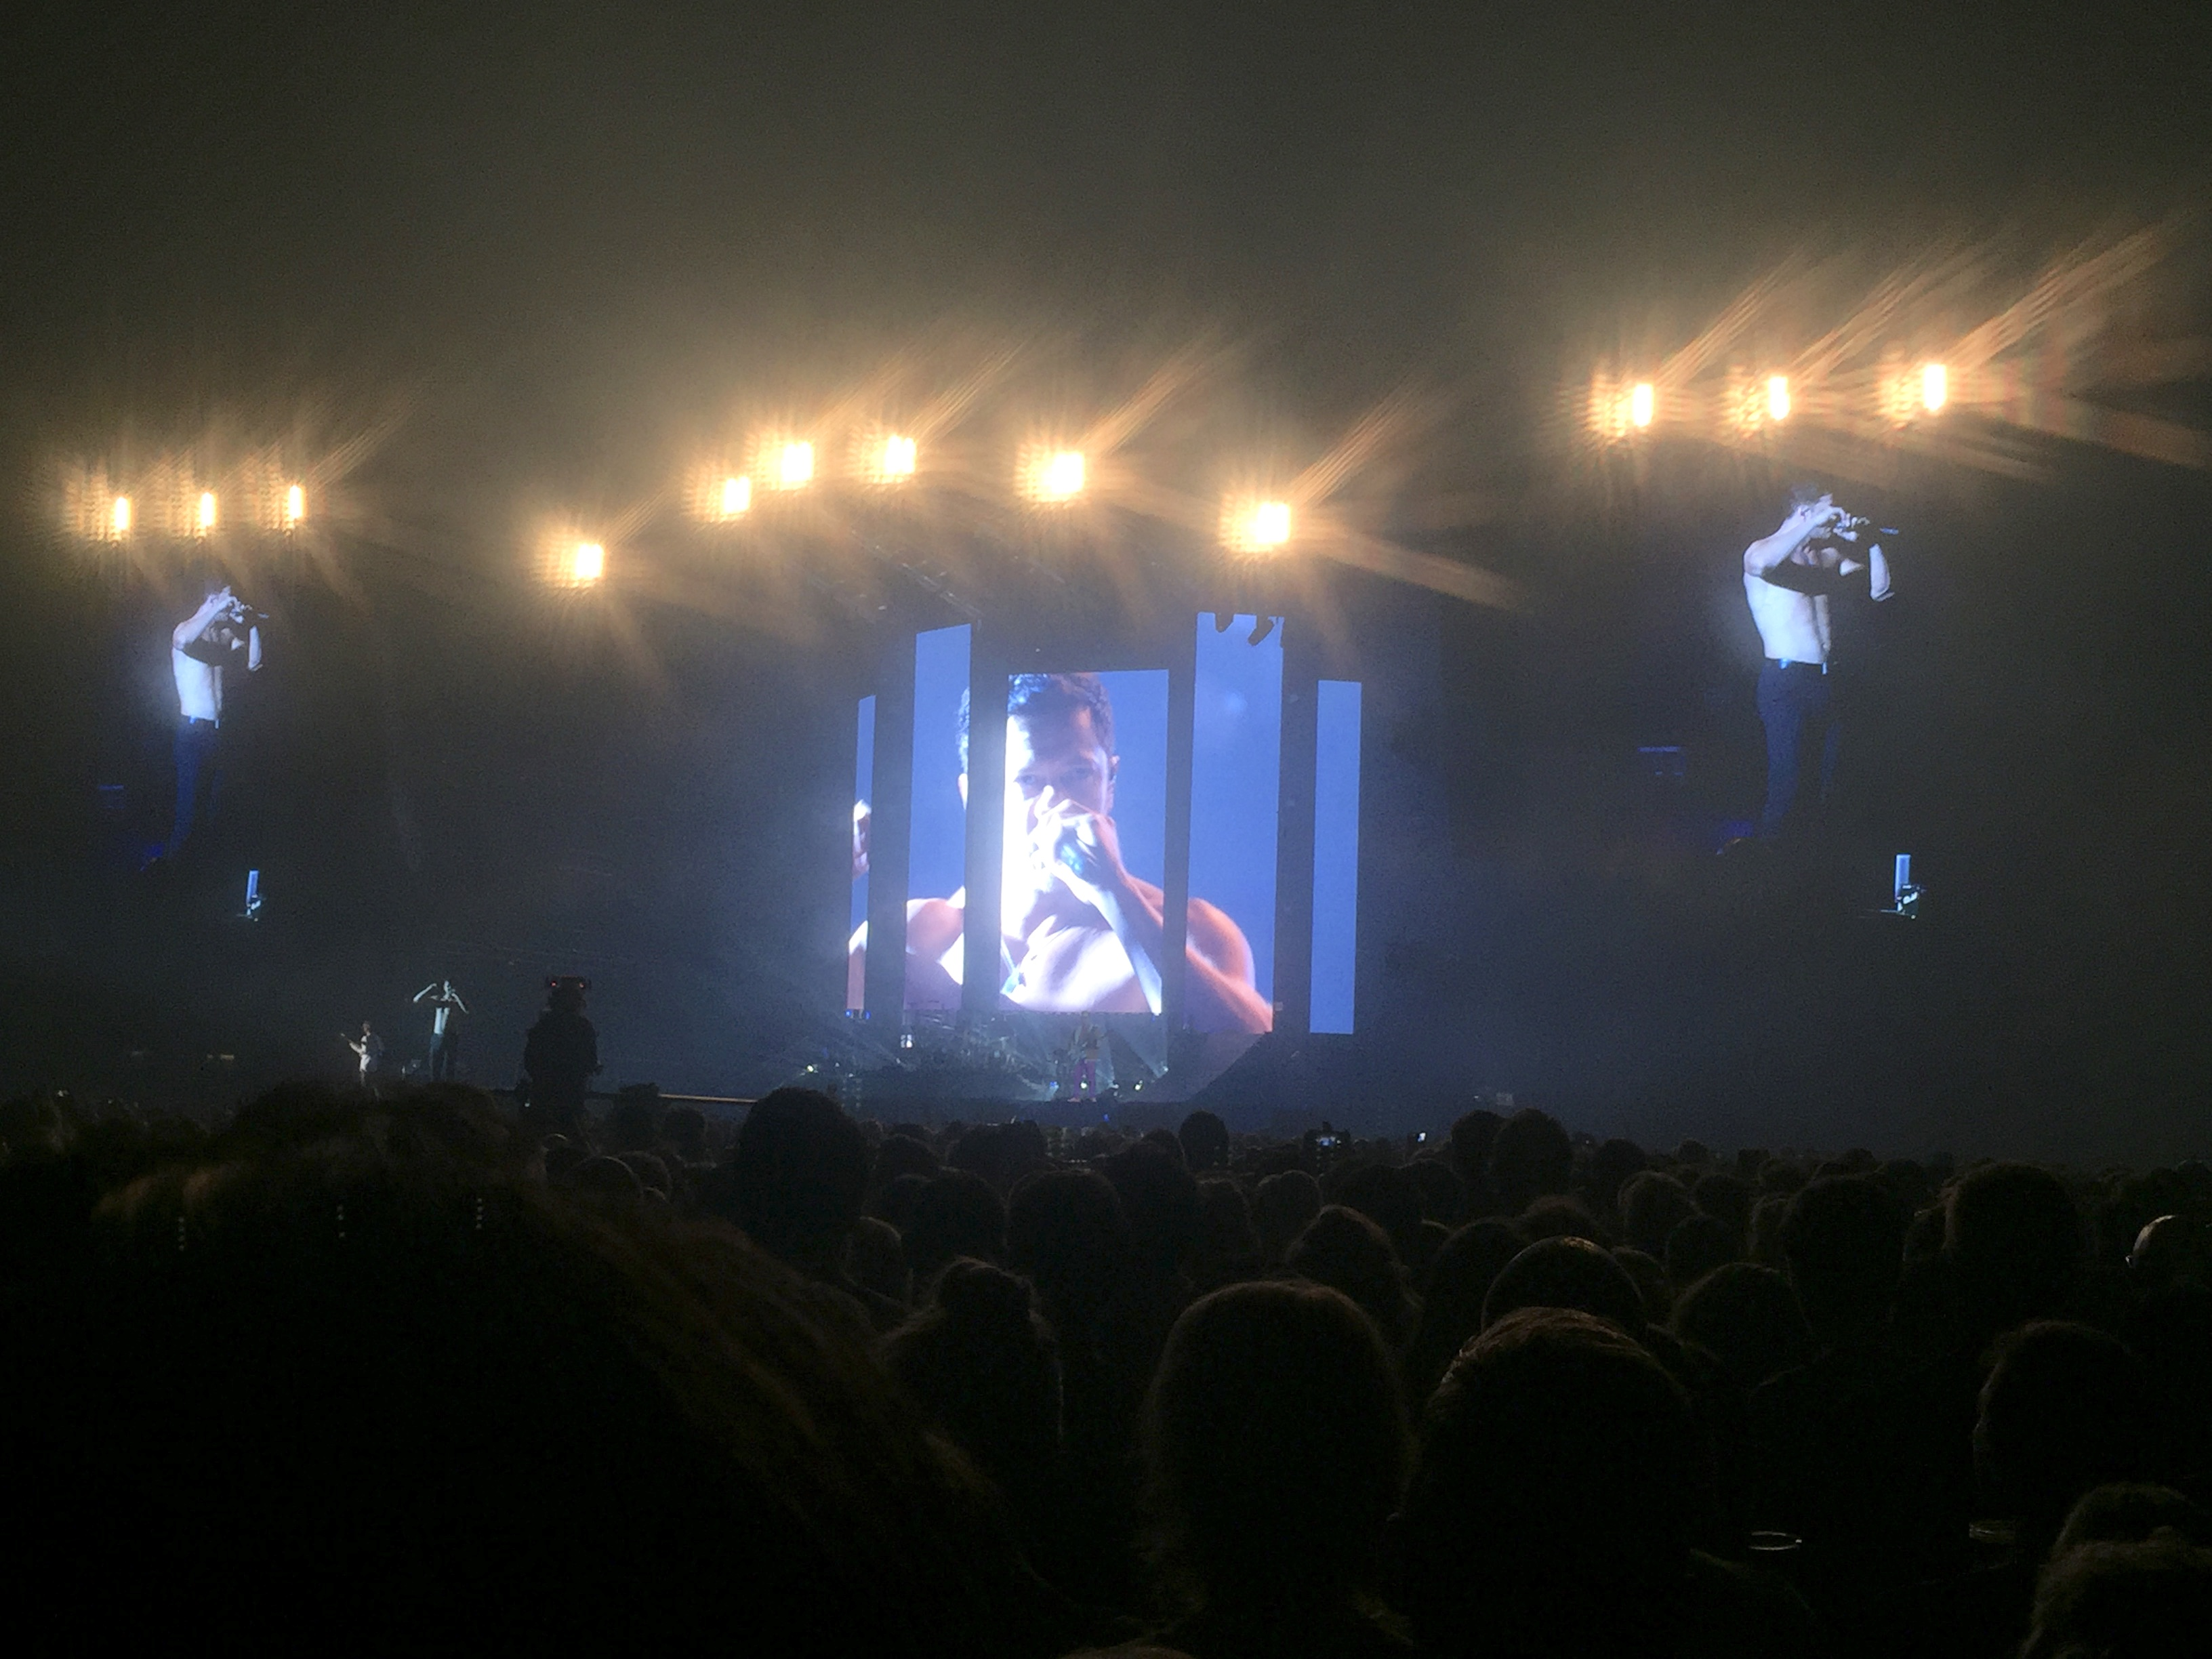 imagine dragons concert gelredome